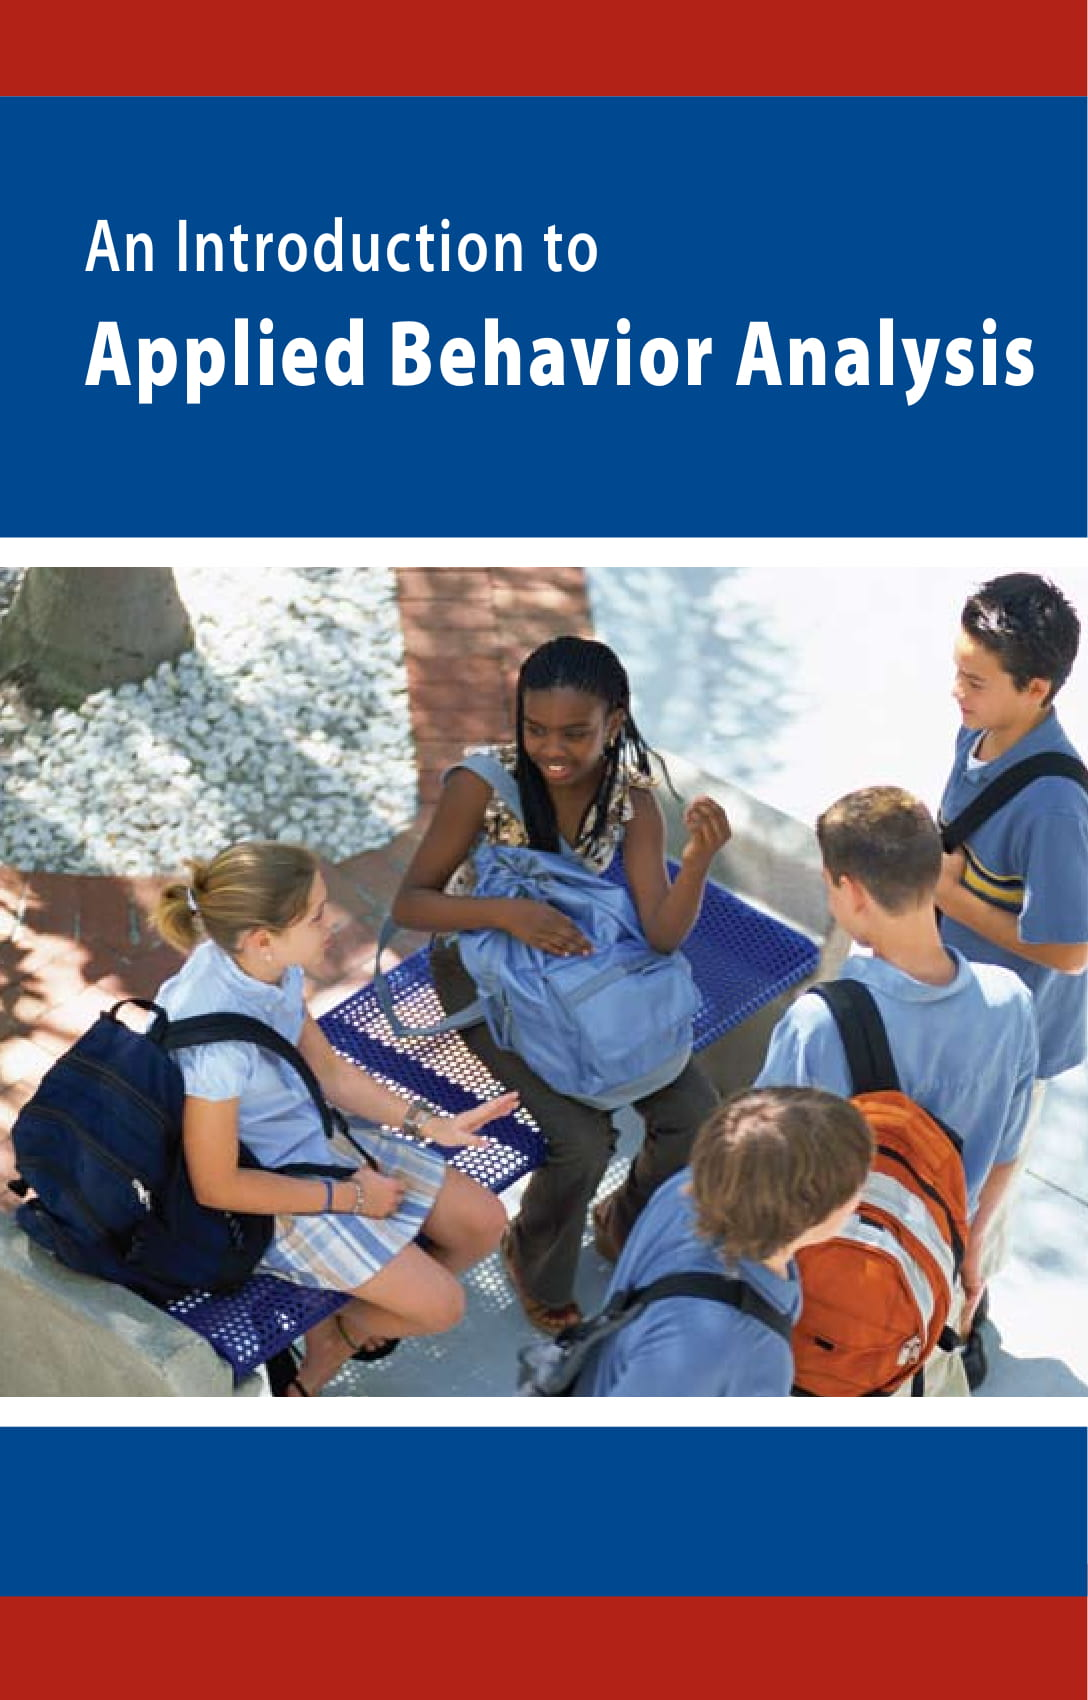 Applied Behavior Analysis – An Introduction With Example